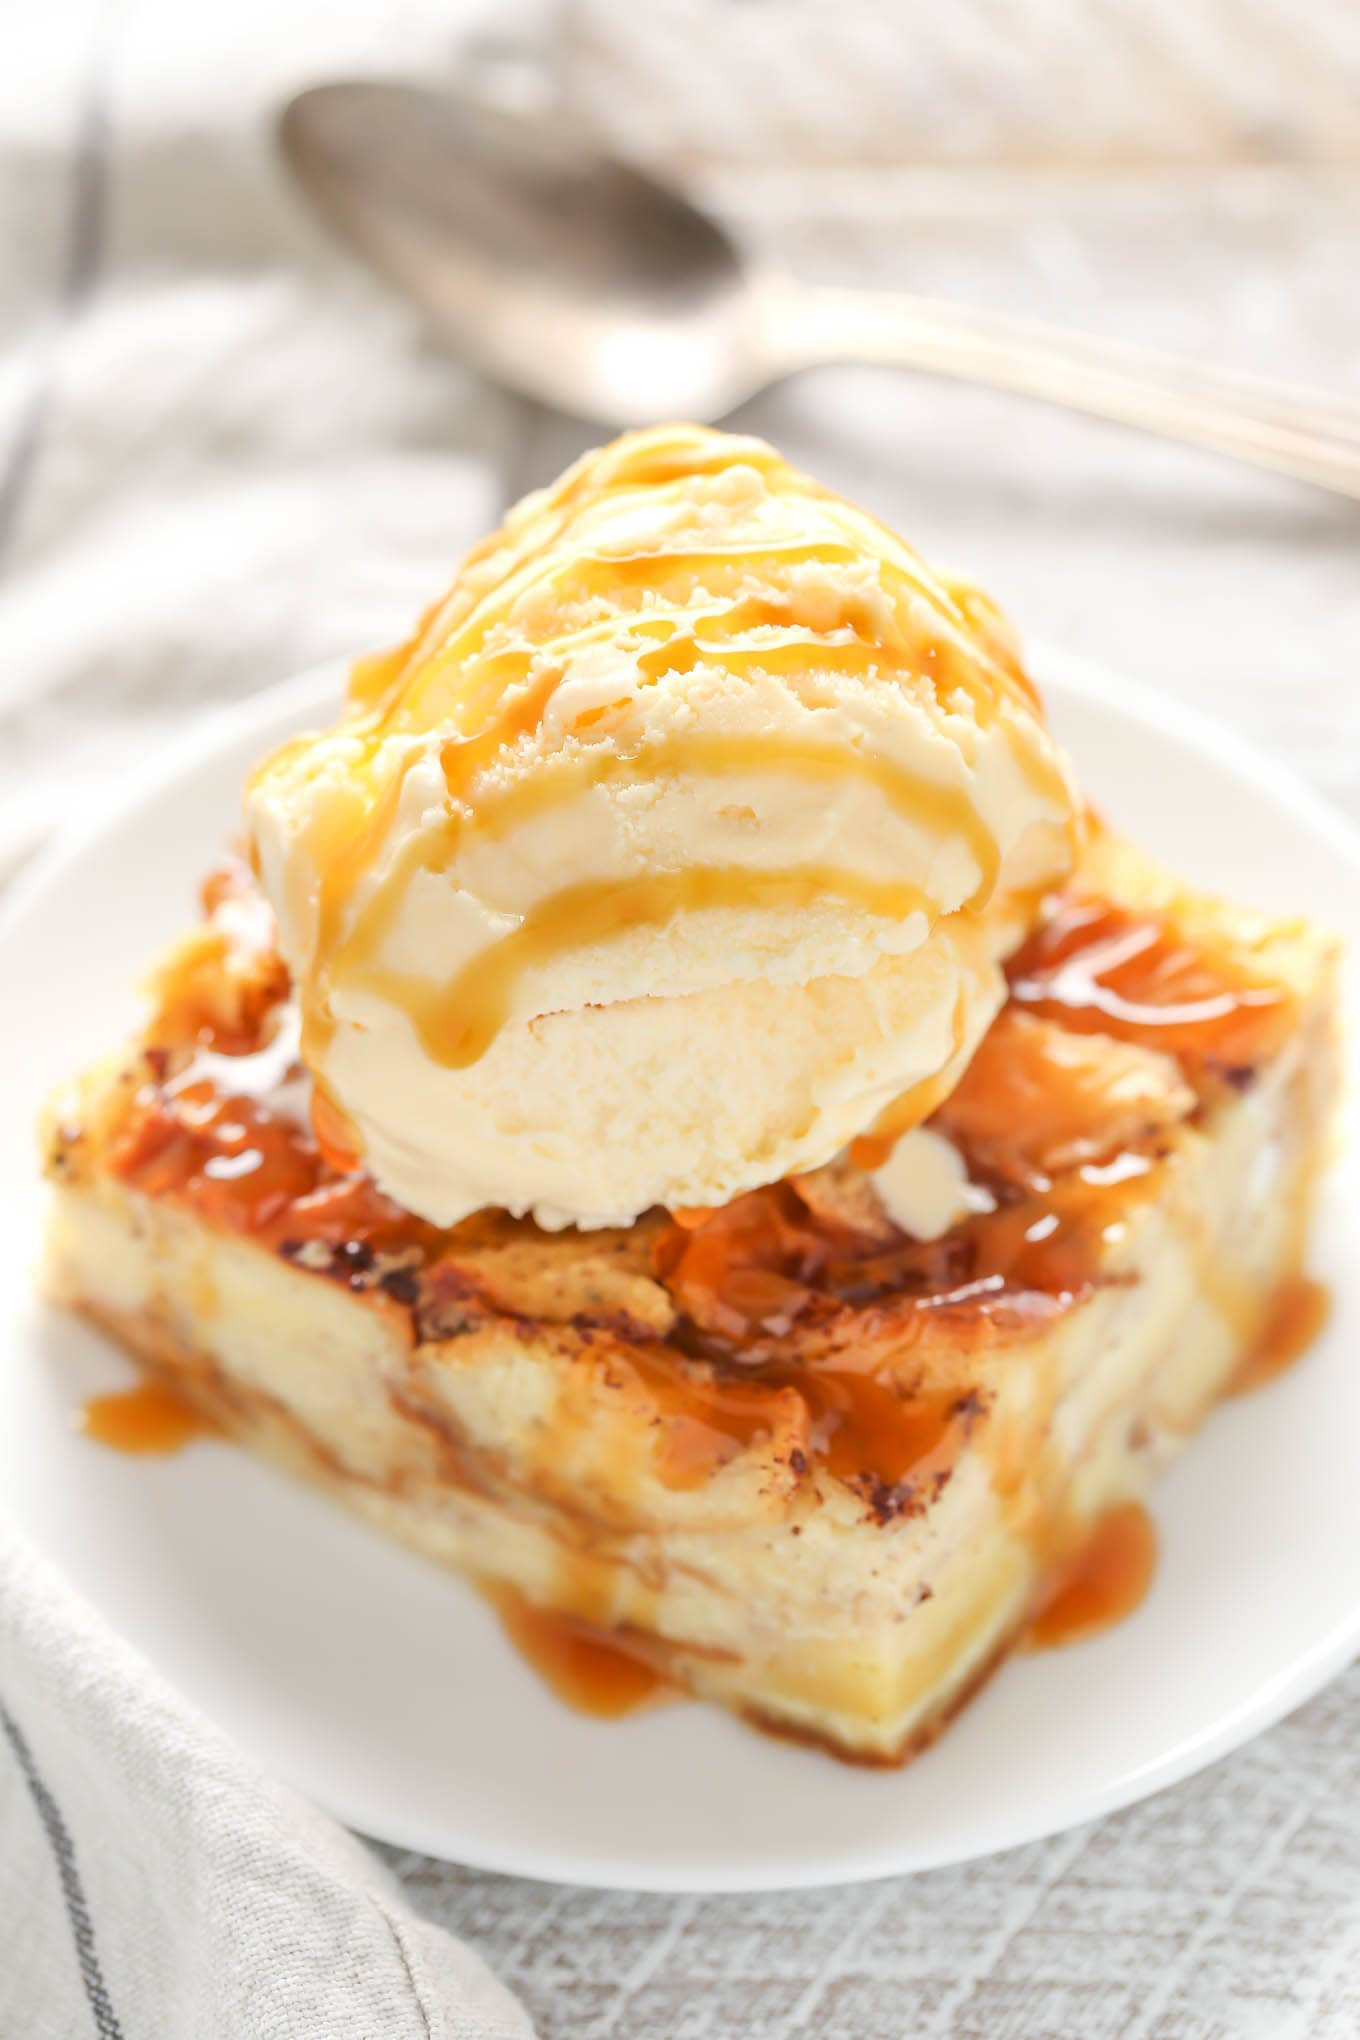 This bread pudding recipe is easy to make with just a few simple ingredients. This is one of our family's favorite recipes and perfect served with a big scoop of ice cream!